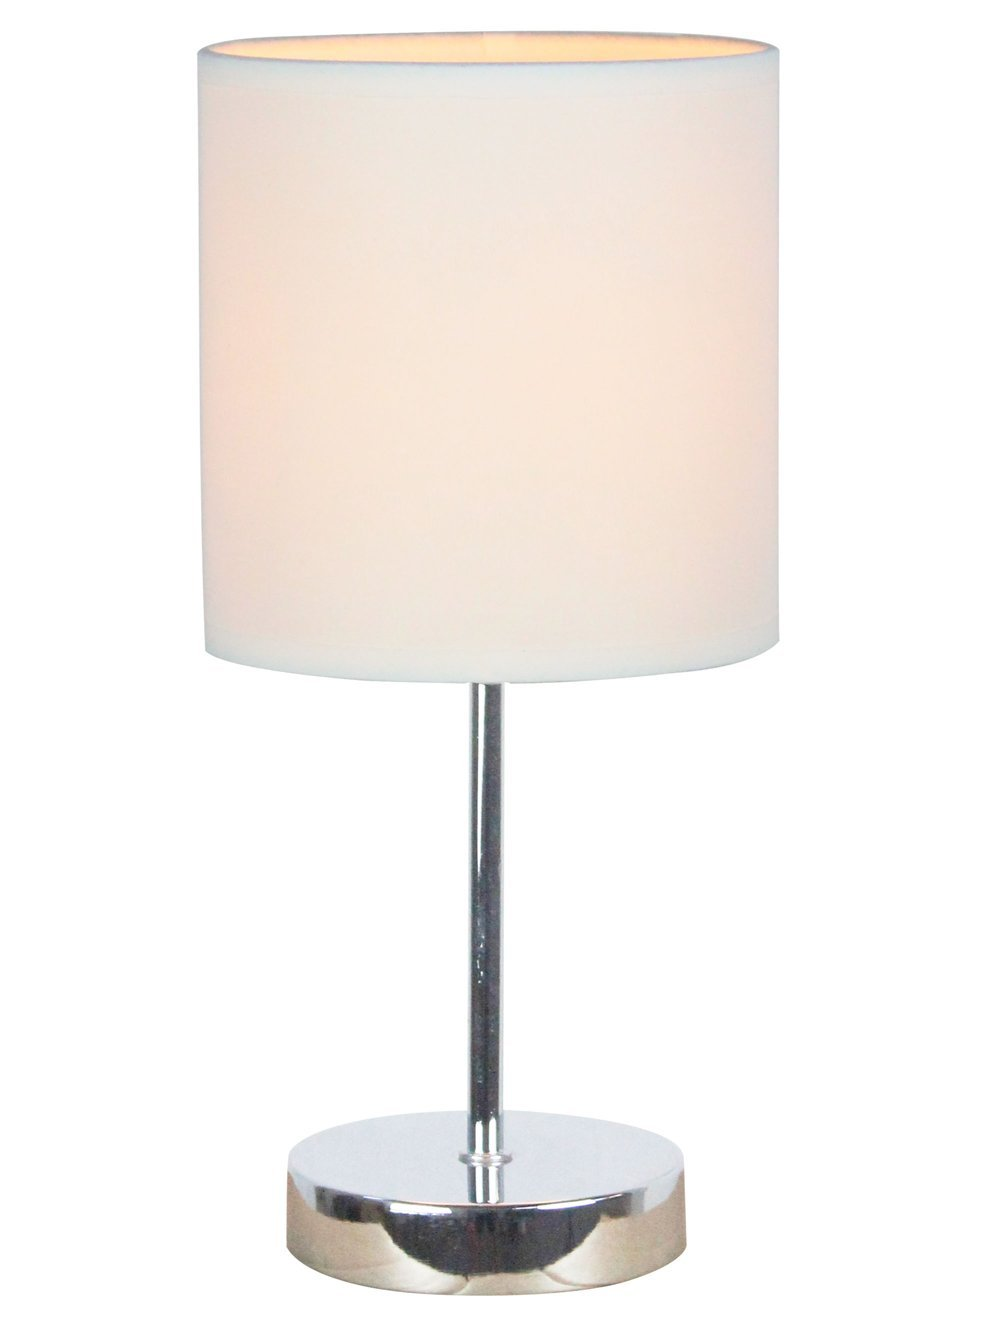 Simple Designs Home LT2007-WHT Chrome Mini Basic Table Lamp with Fabric Shade, 5.7'' x 5.7'' x 11.81'', White by Simple Designs Home